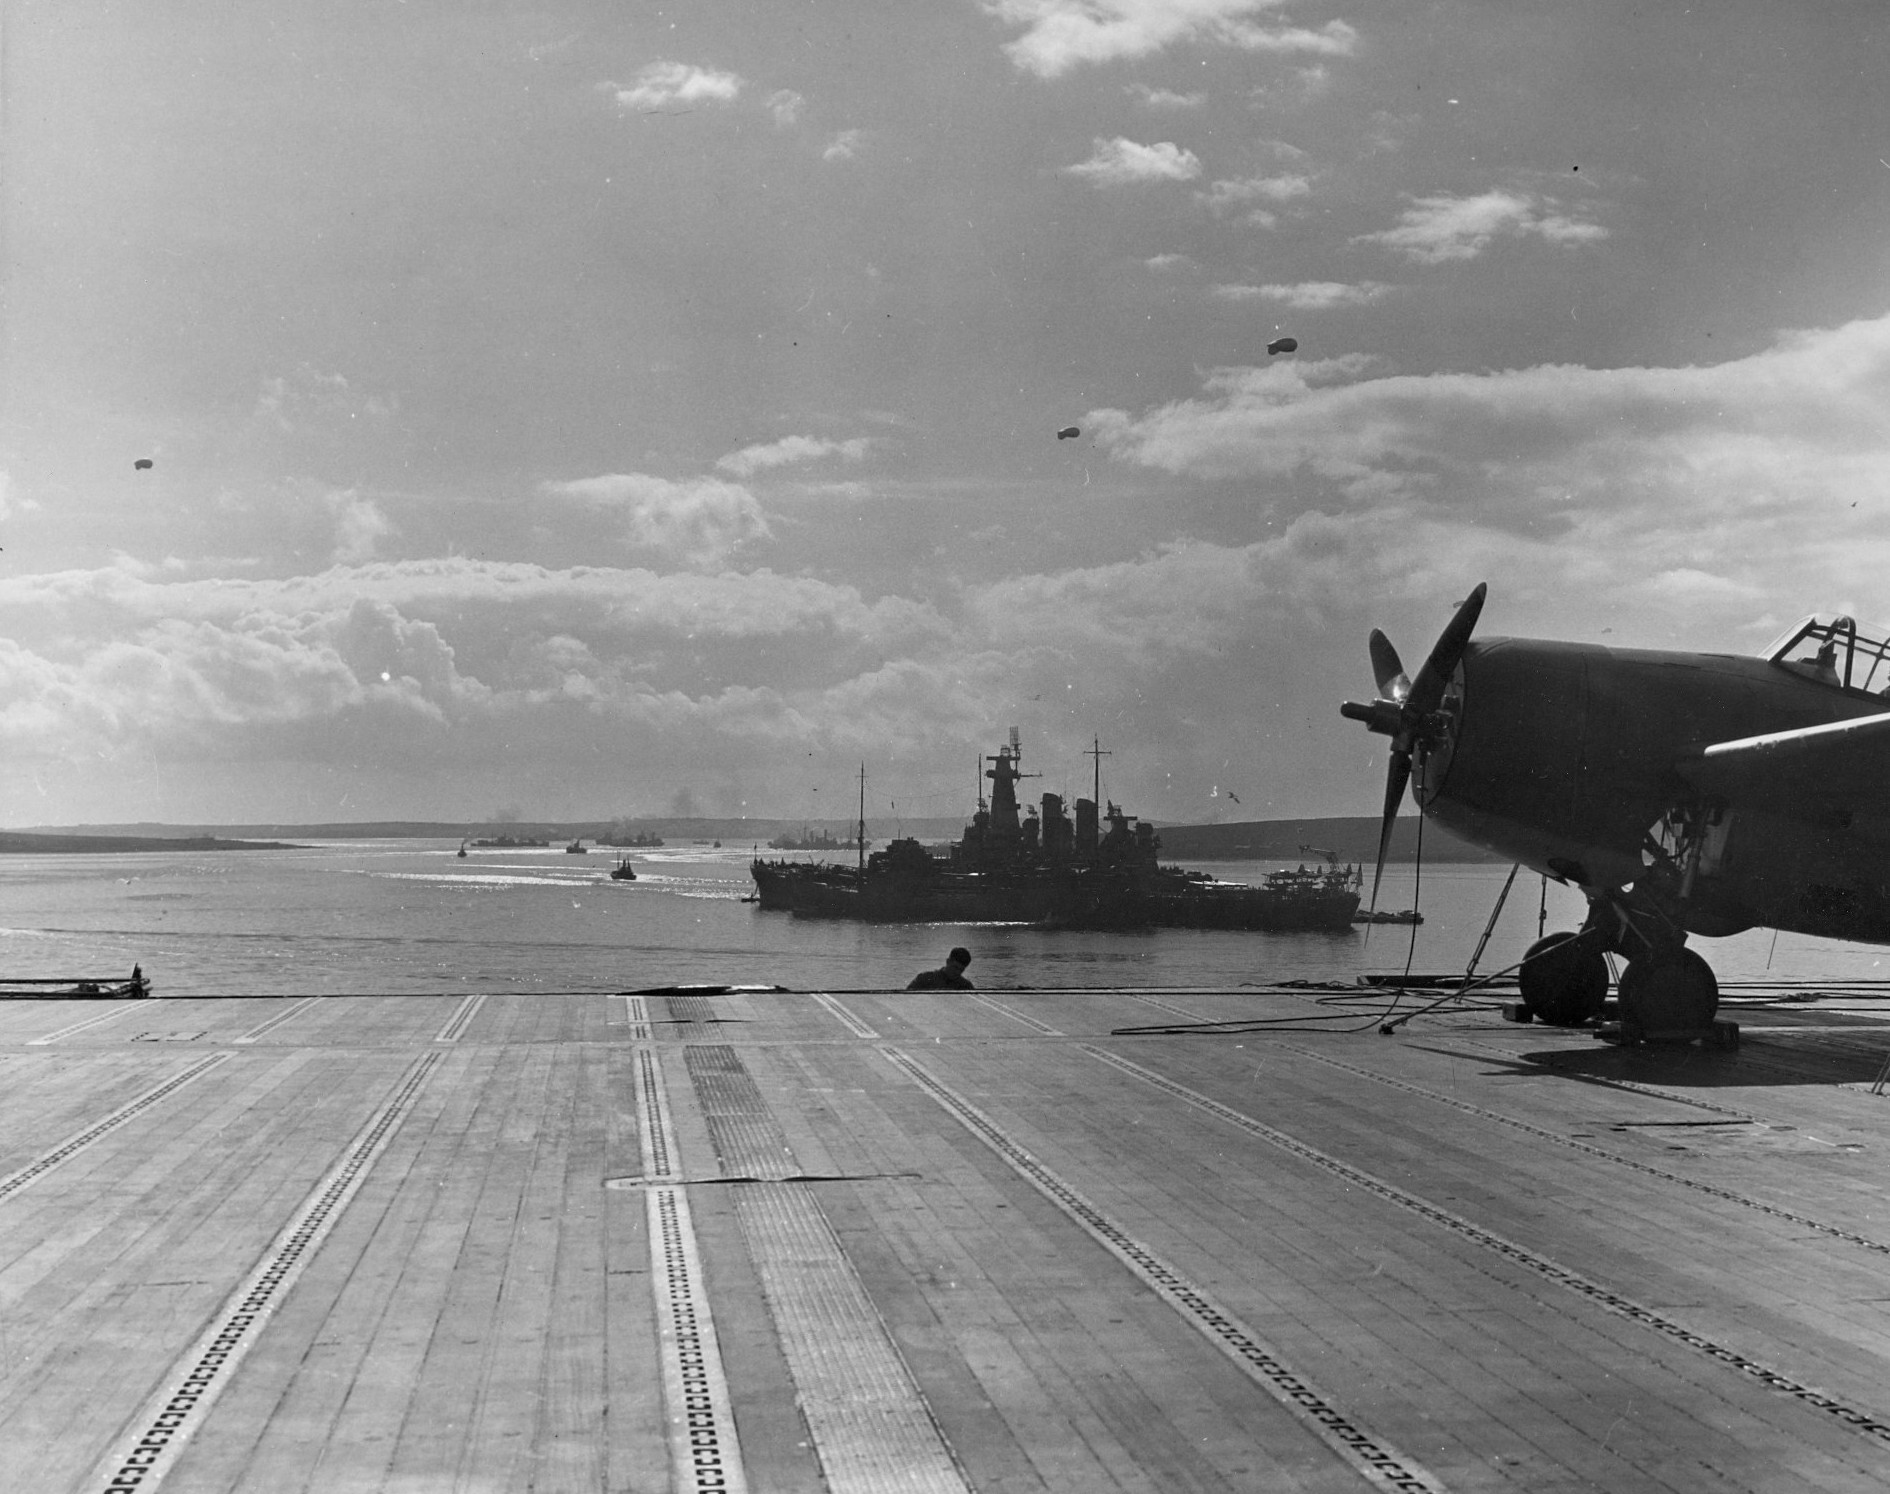 Carrier USS Wasp and battleship USS Washington of TF 39 at Scapa Flow, Scotland, 4 April 1942 (US Naval History and Heritage Command)